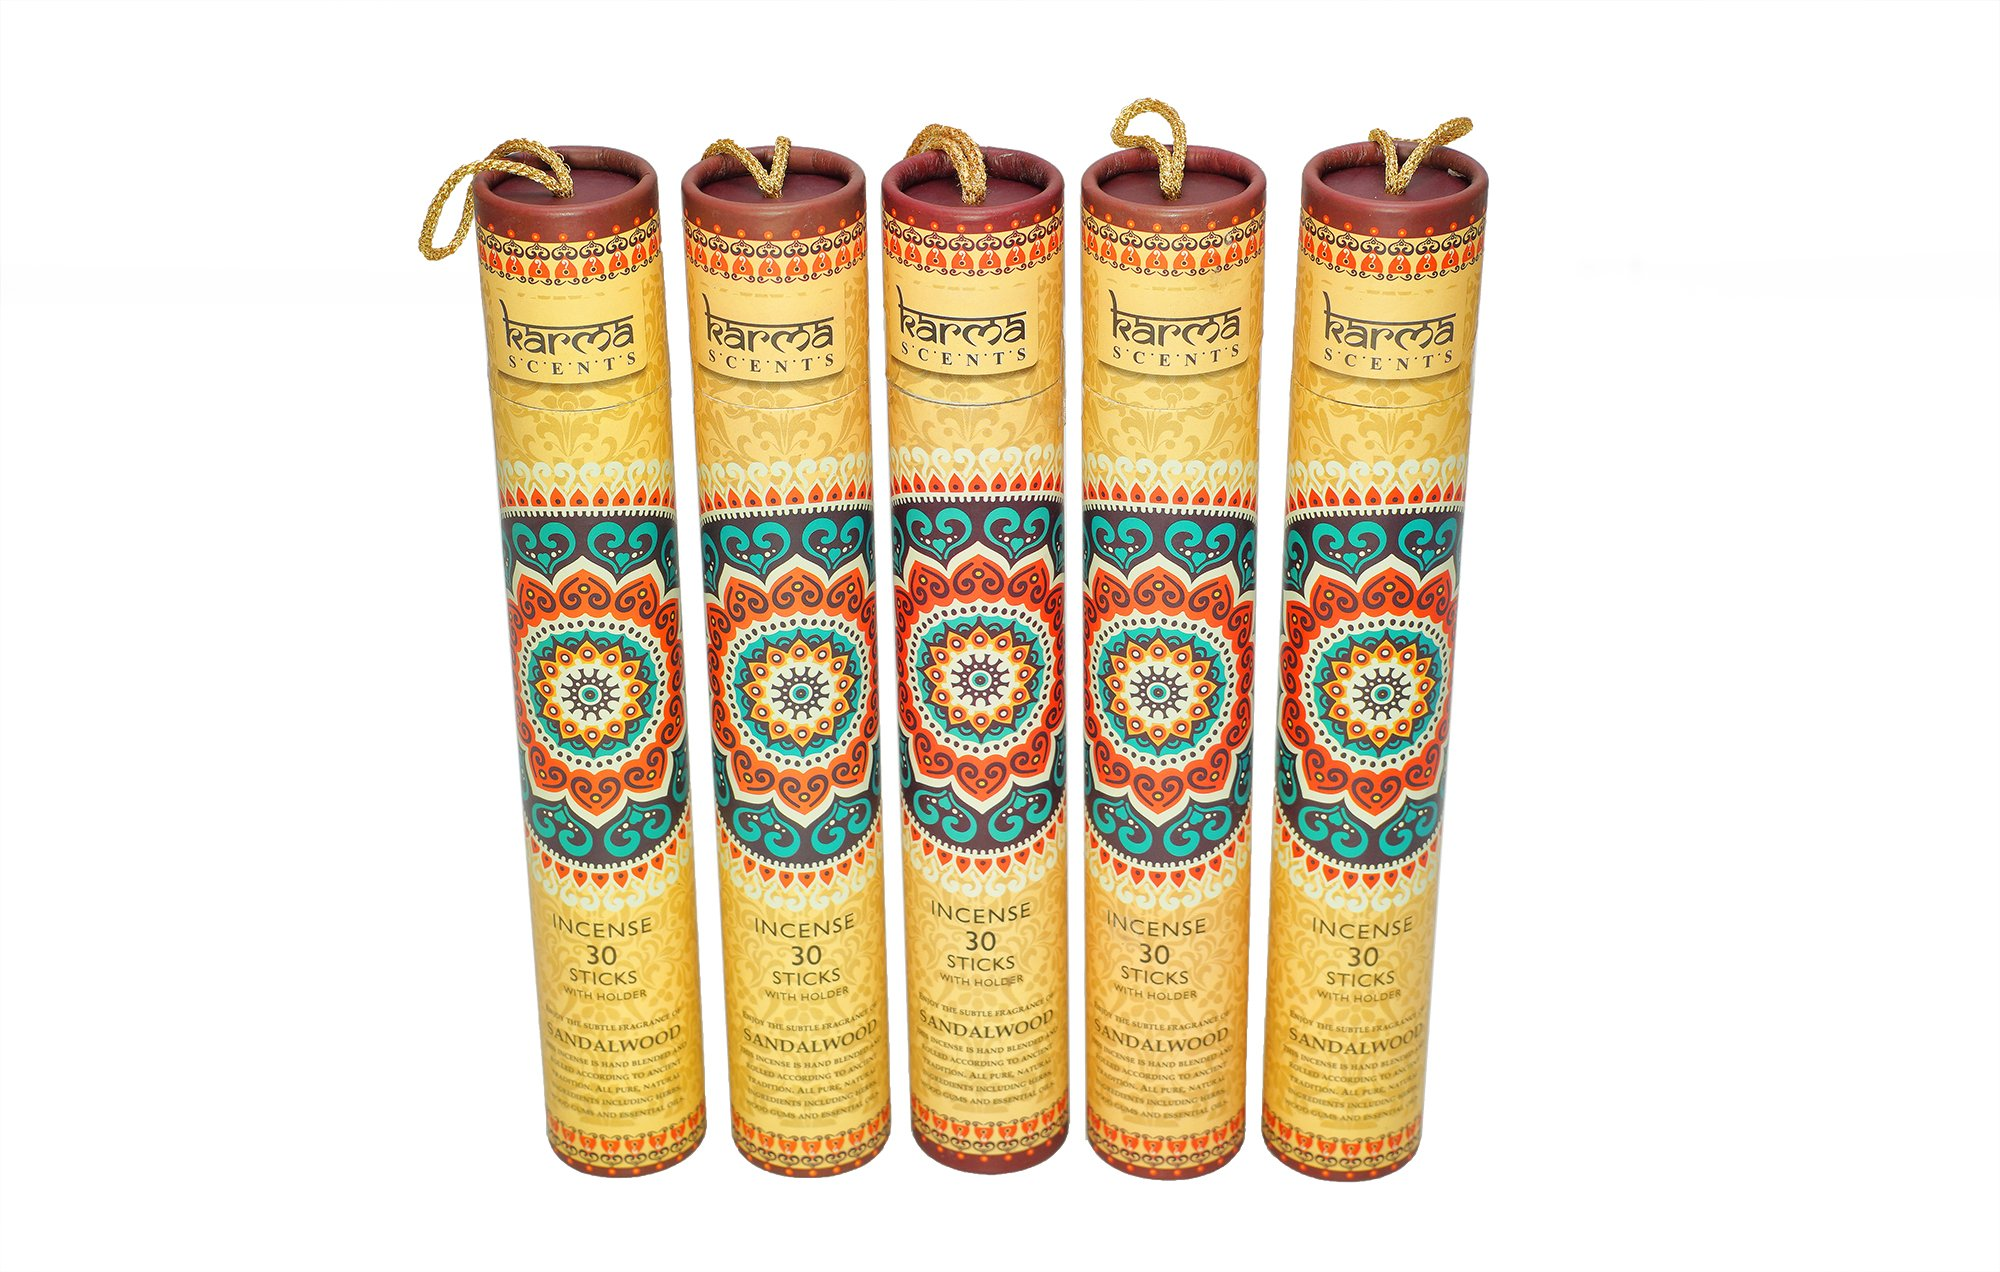 Premium Sandalwood Incense Sticks 5 Set Gift Pack with a Holder In Each Box, Includes 150 Sticks and Five Incense Burners by Karma Scents (Image #1)